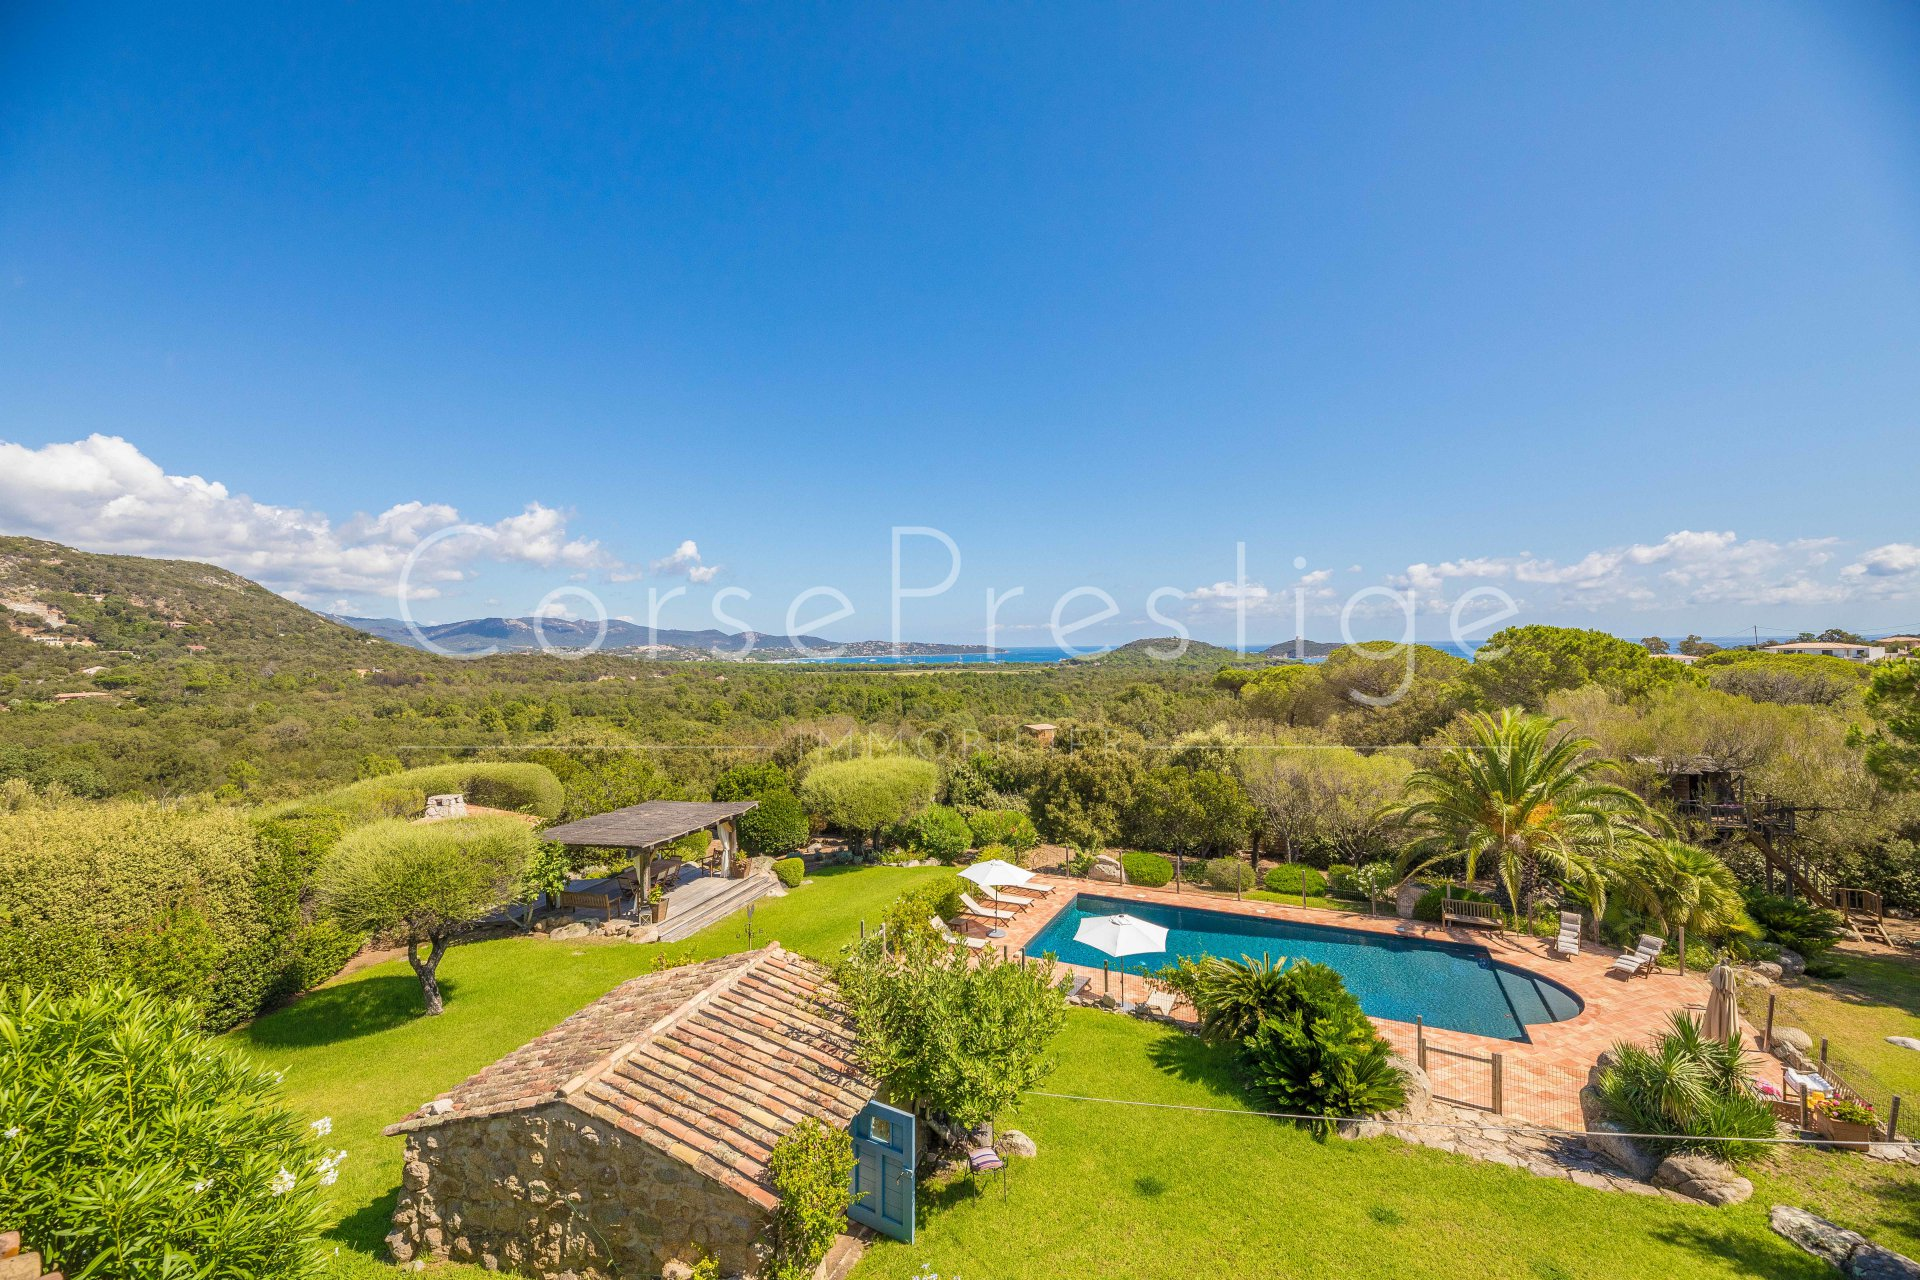 porto-vecchio charming property for sale facing pinarello image1